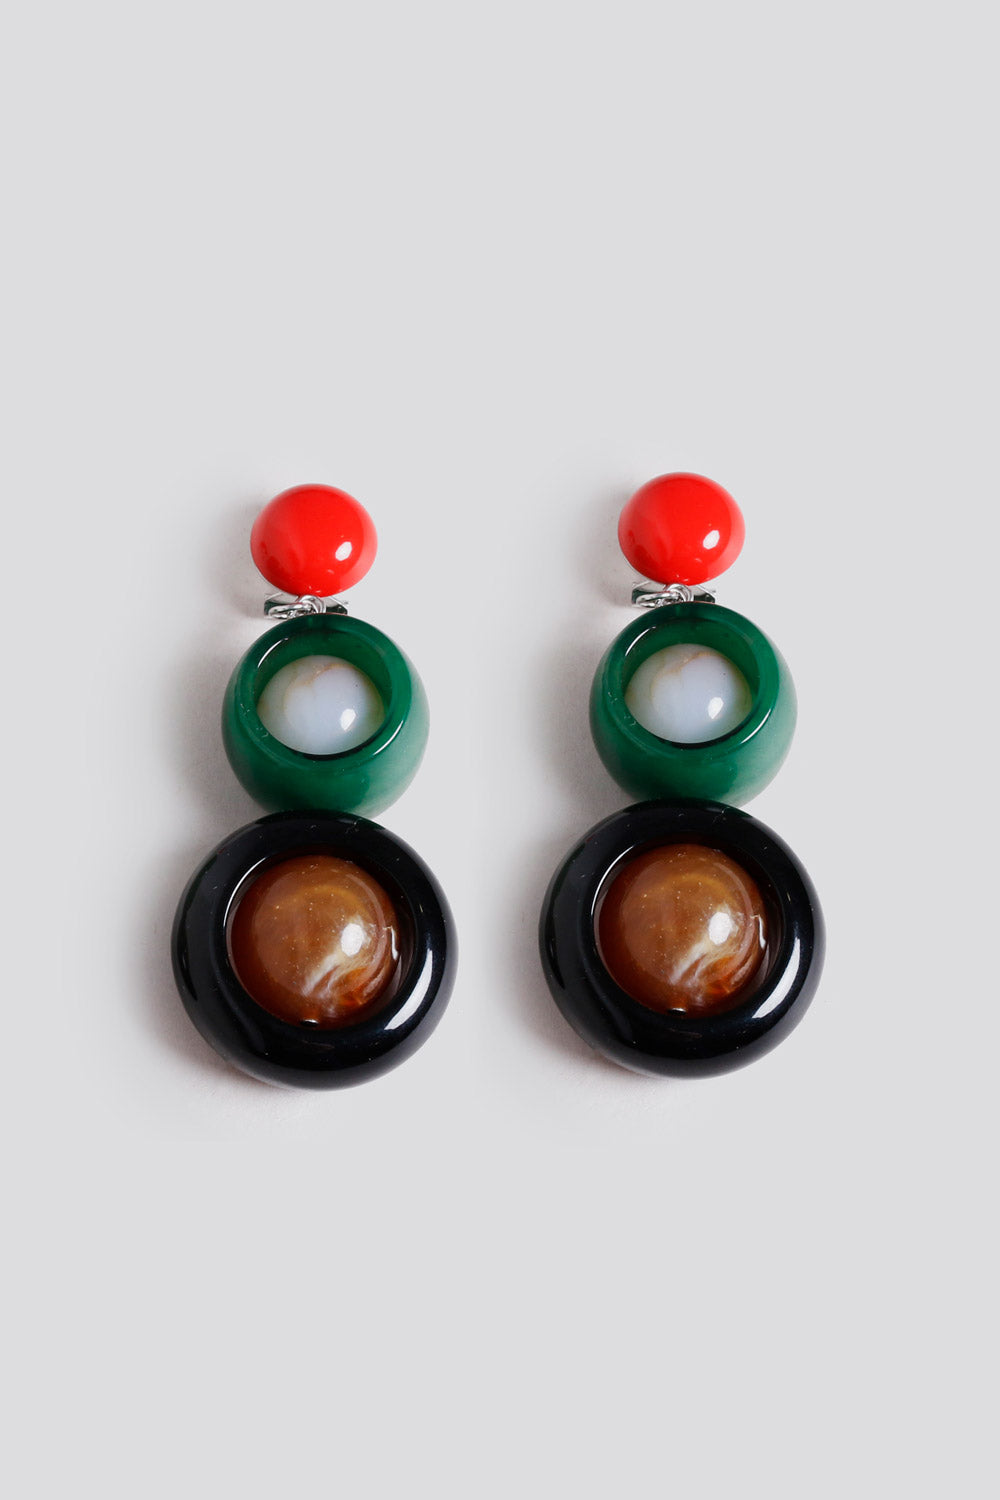 Ladybird Earrings in Red Green